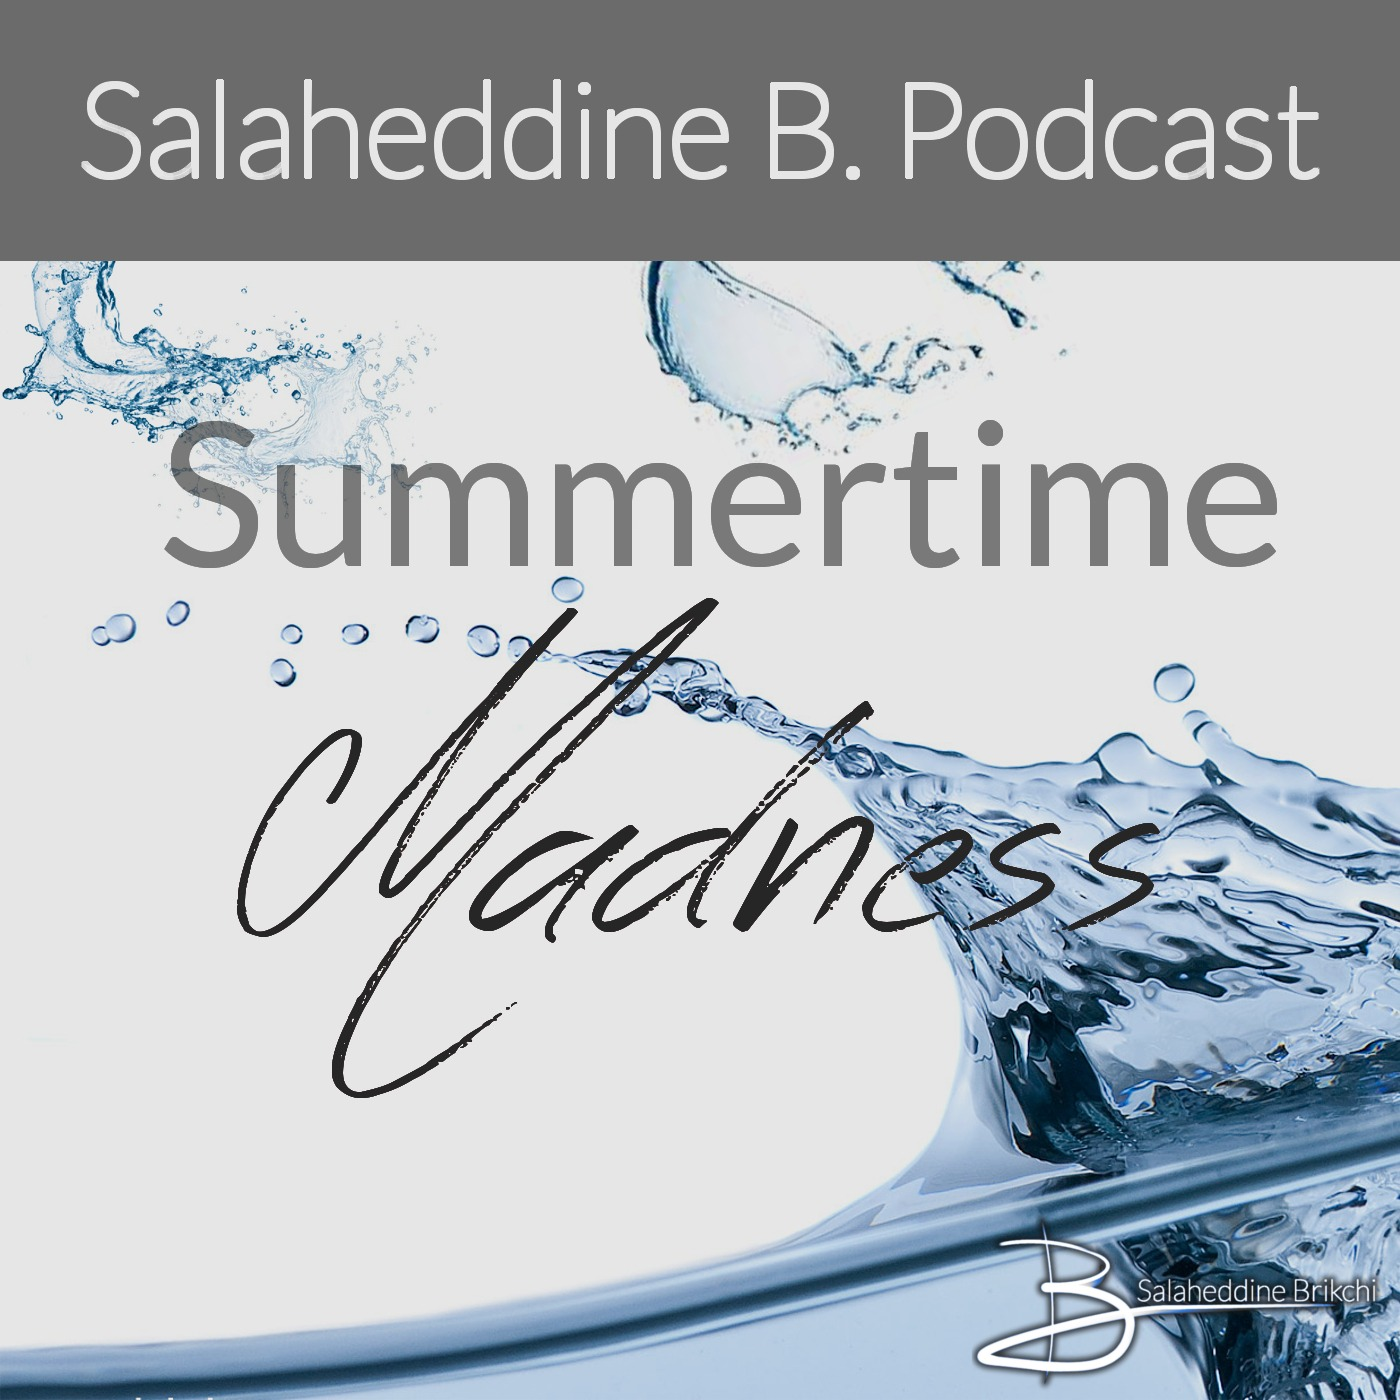 Salaheddine B's Podcasts